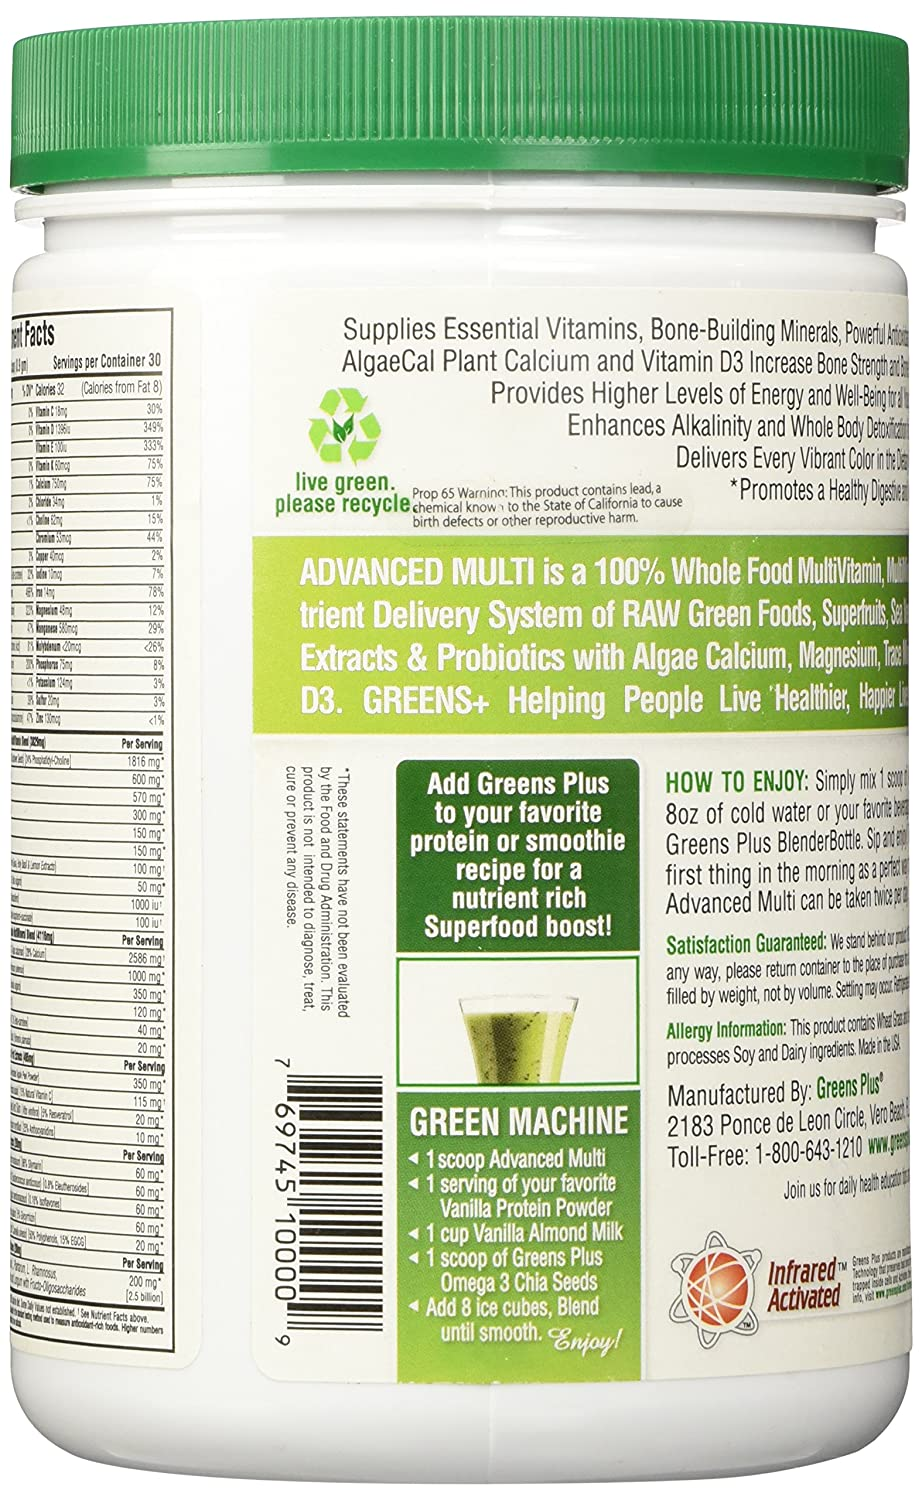 Amazon.com: GREENS PLUS Greens Plus Powder, 9.4 OZ: Health & Personal Care